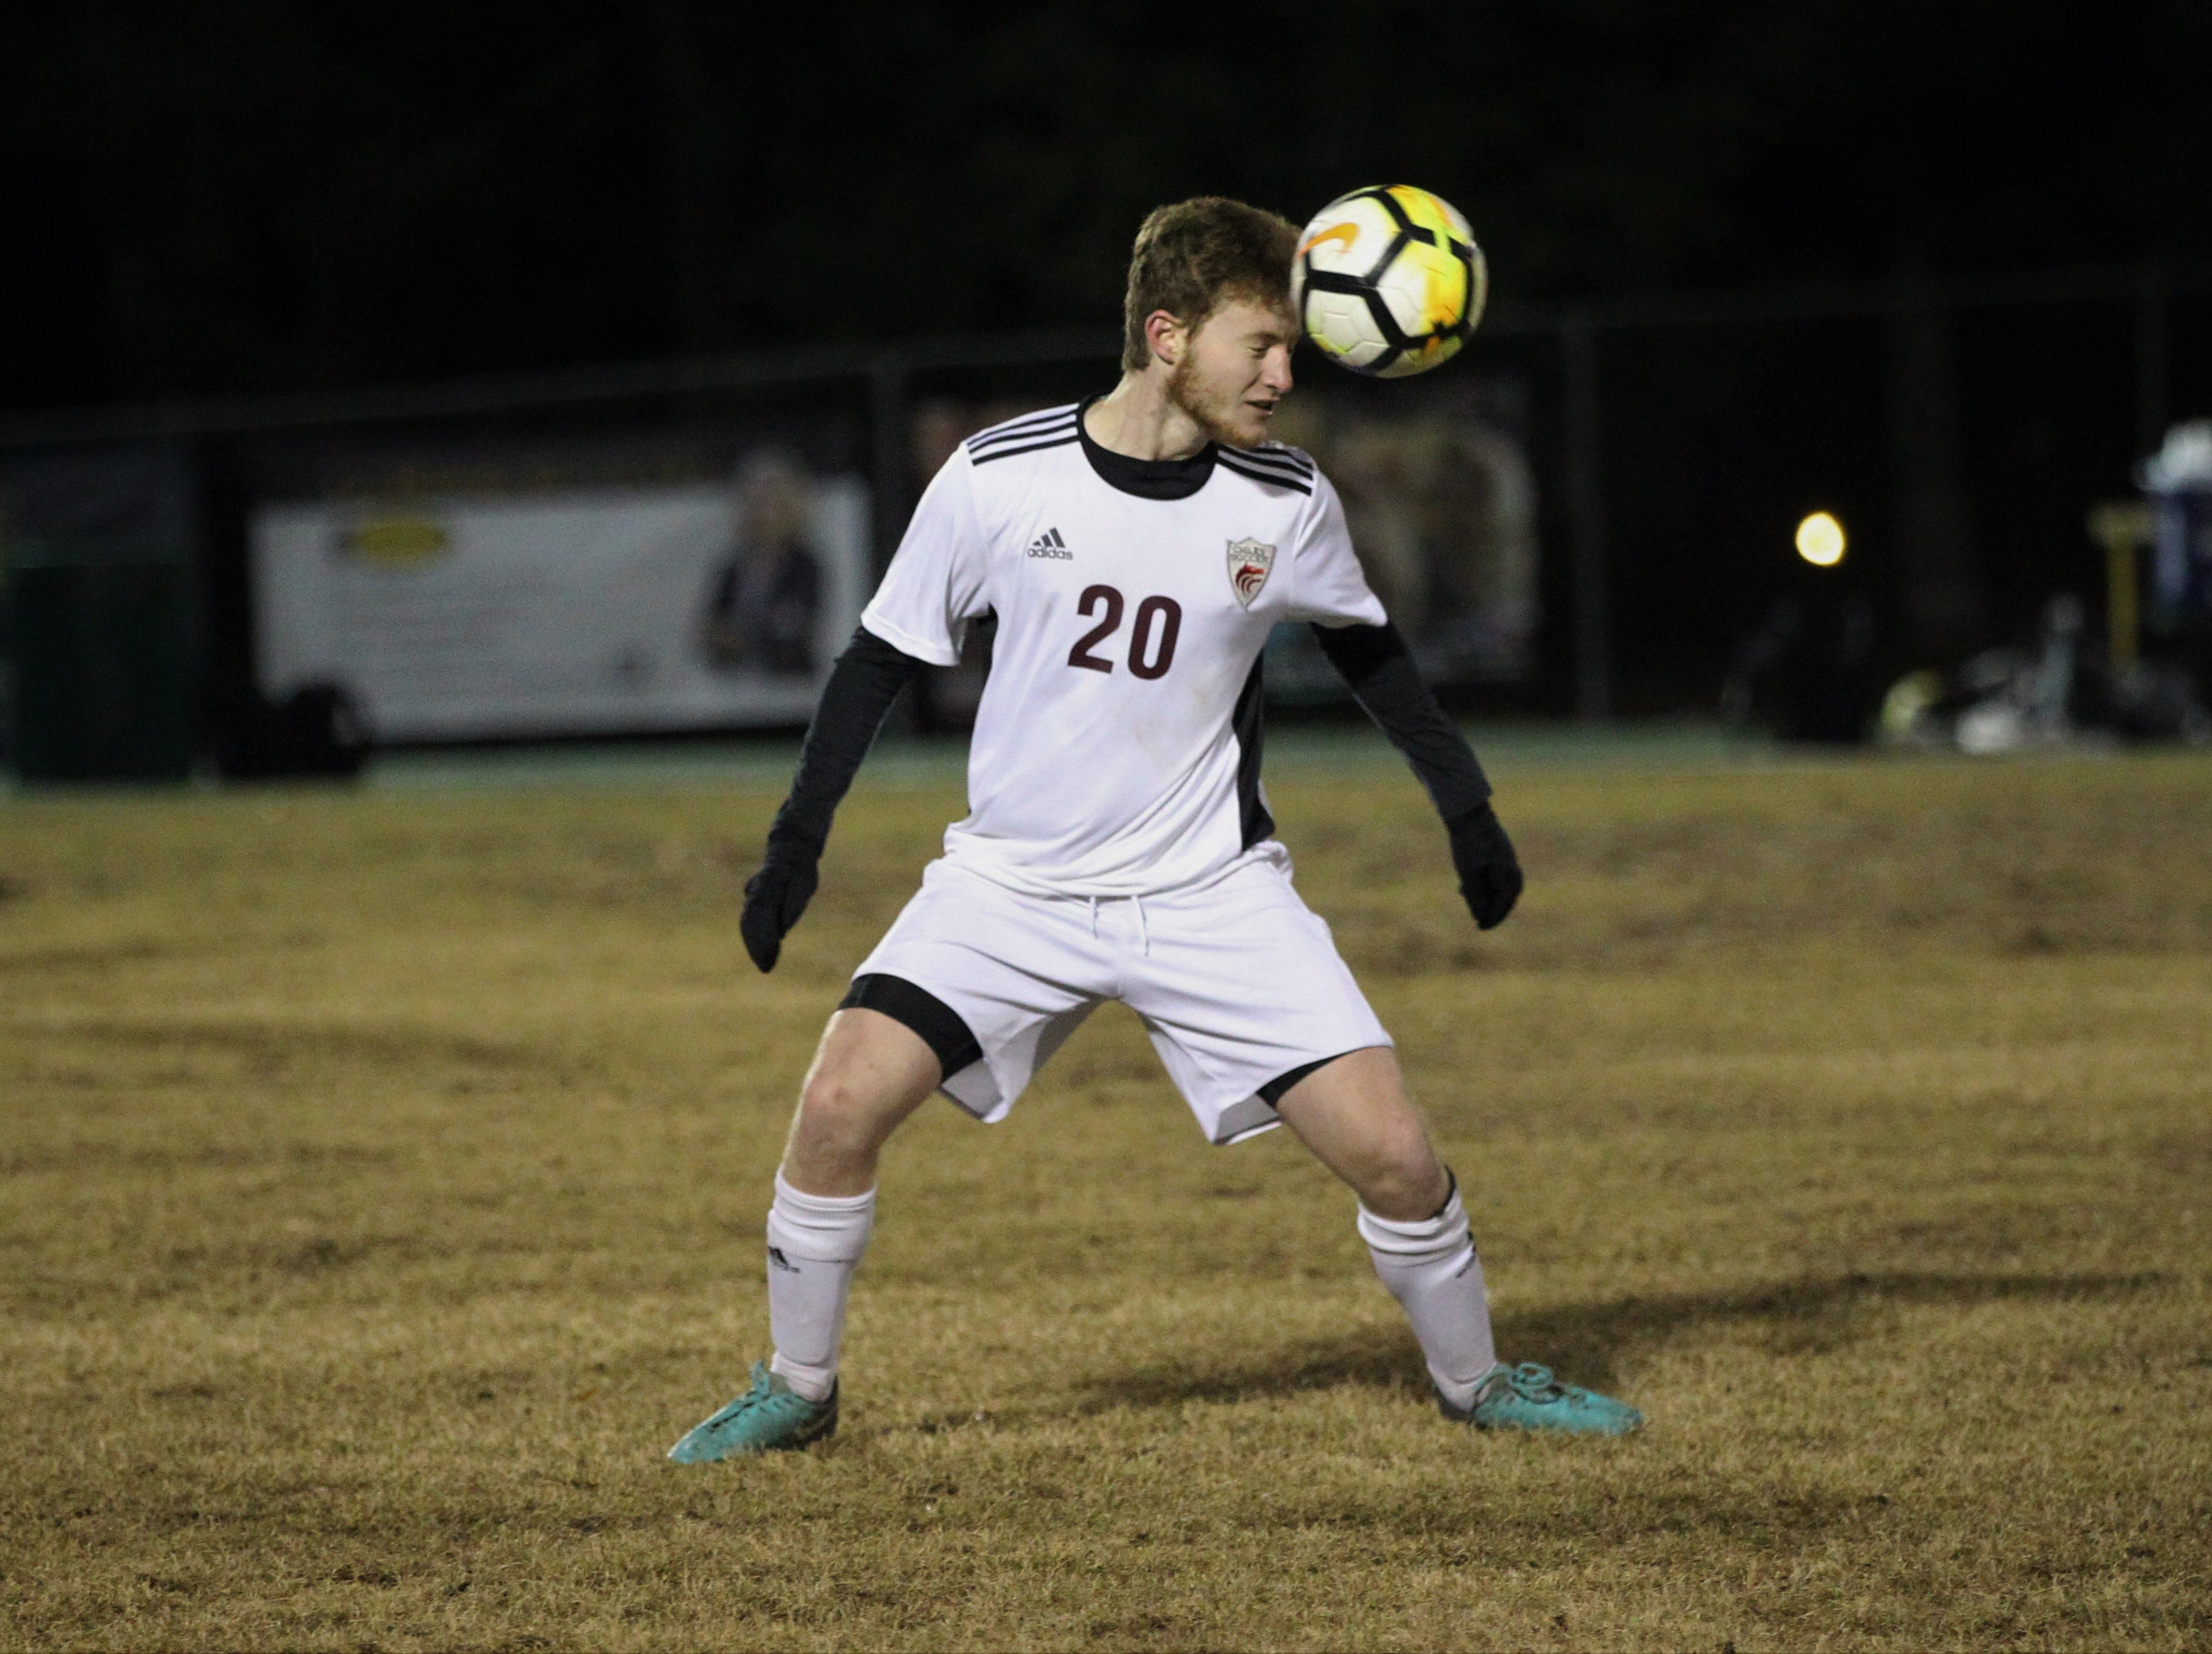 Chiles' Ethan Glogau heads a pass forward as Chiles' boys soccer team beat Lincoln 1-0 in a District 2-4A semifinal on Jan. 30, 2019.